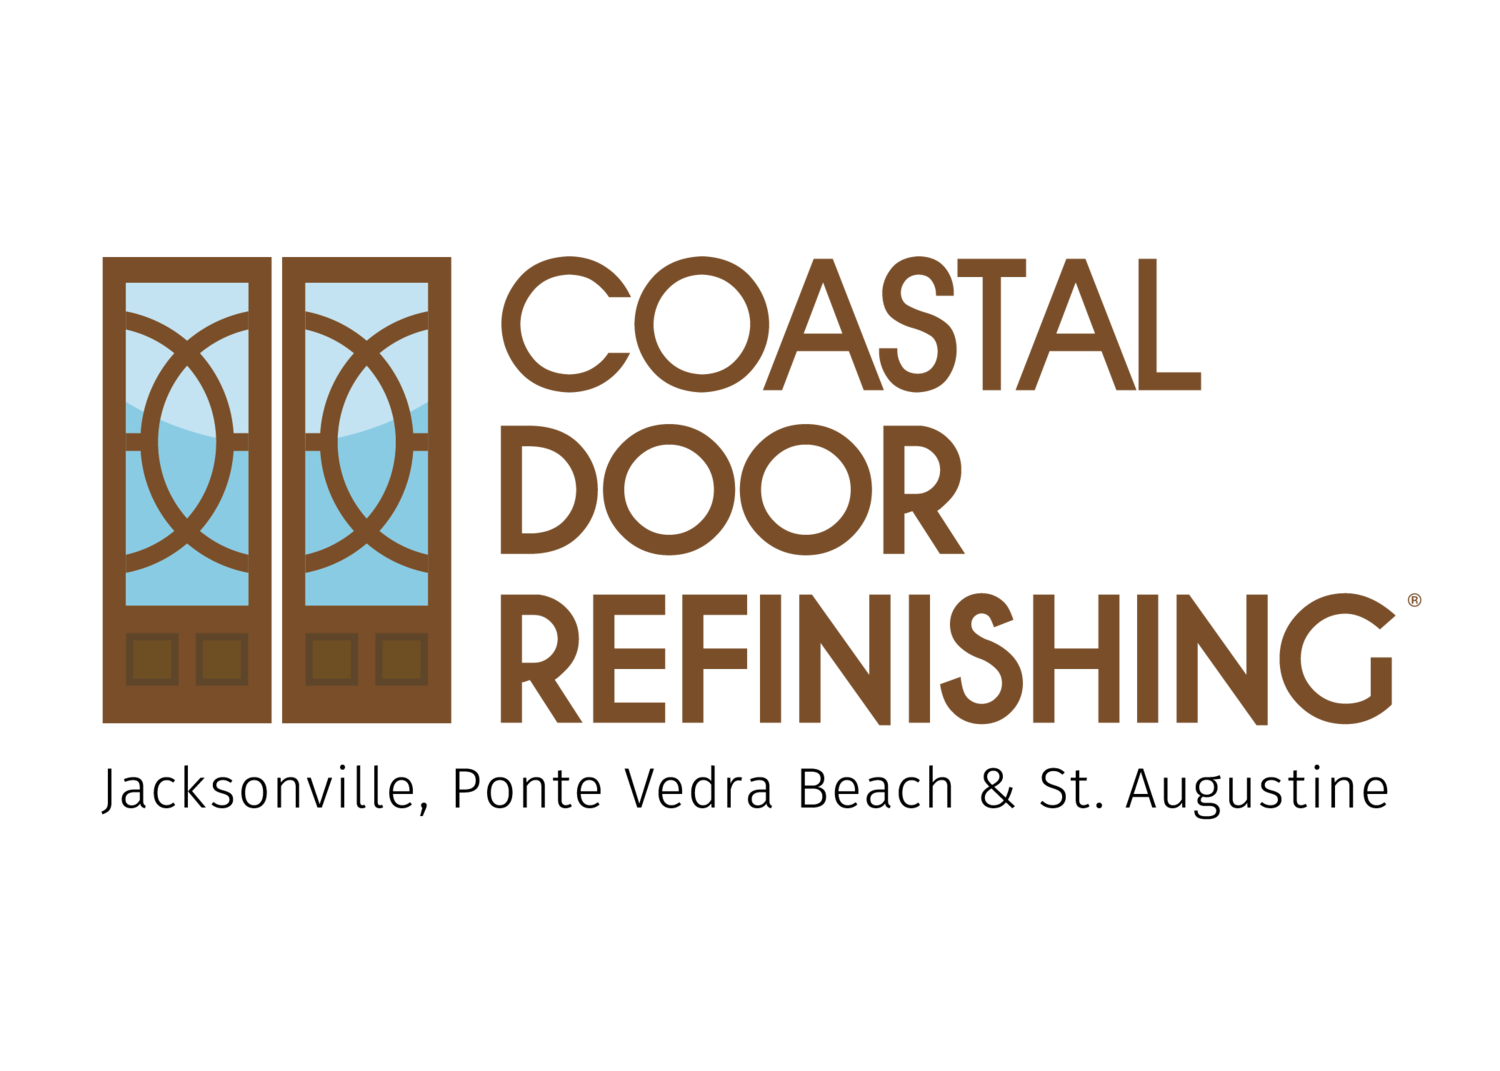 Coastal Door Refinishing